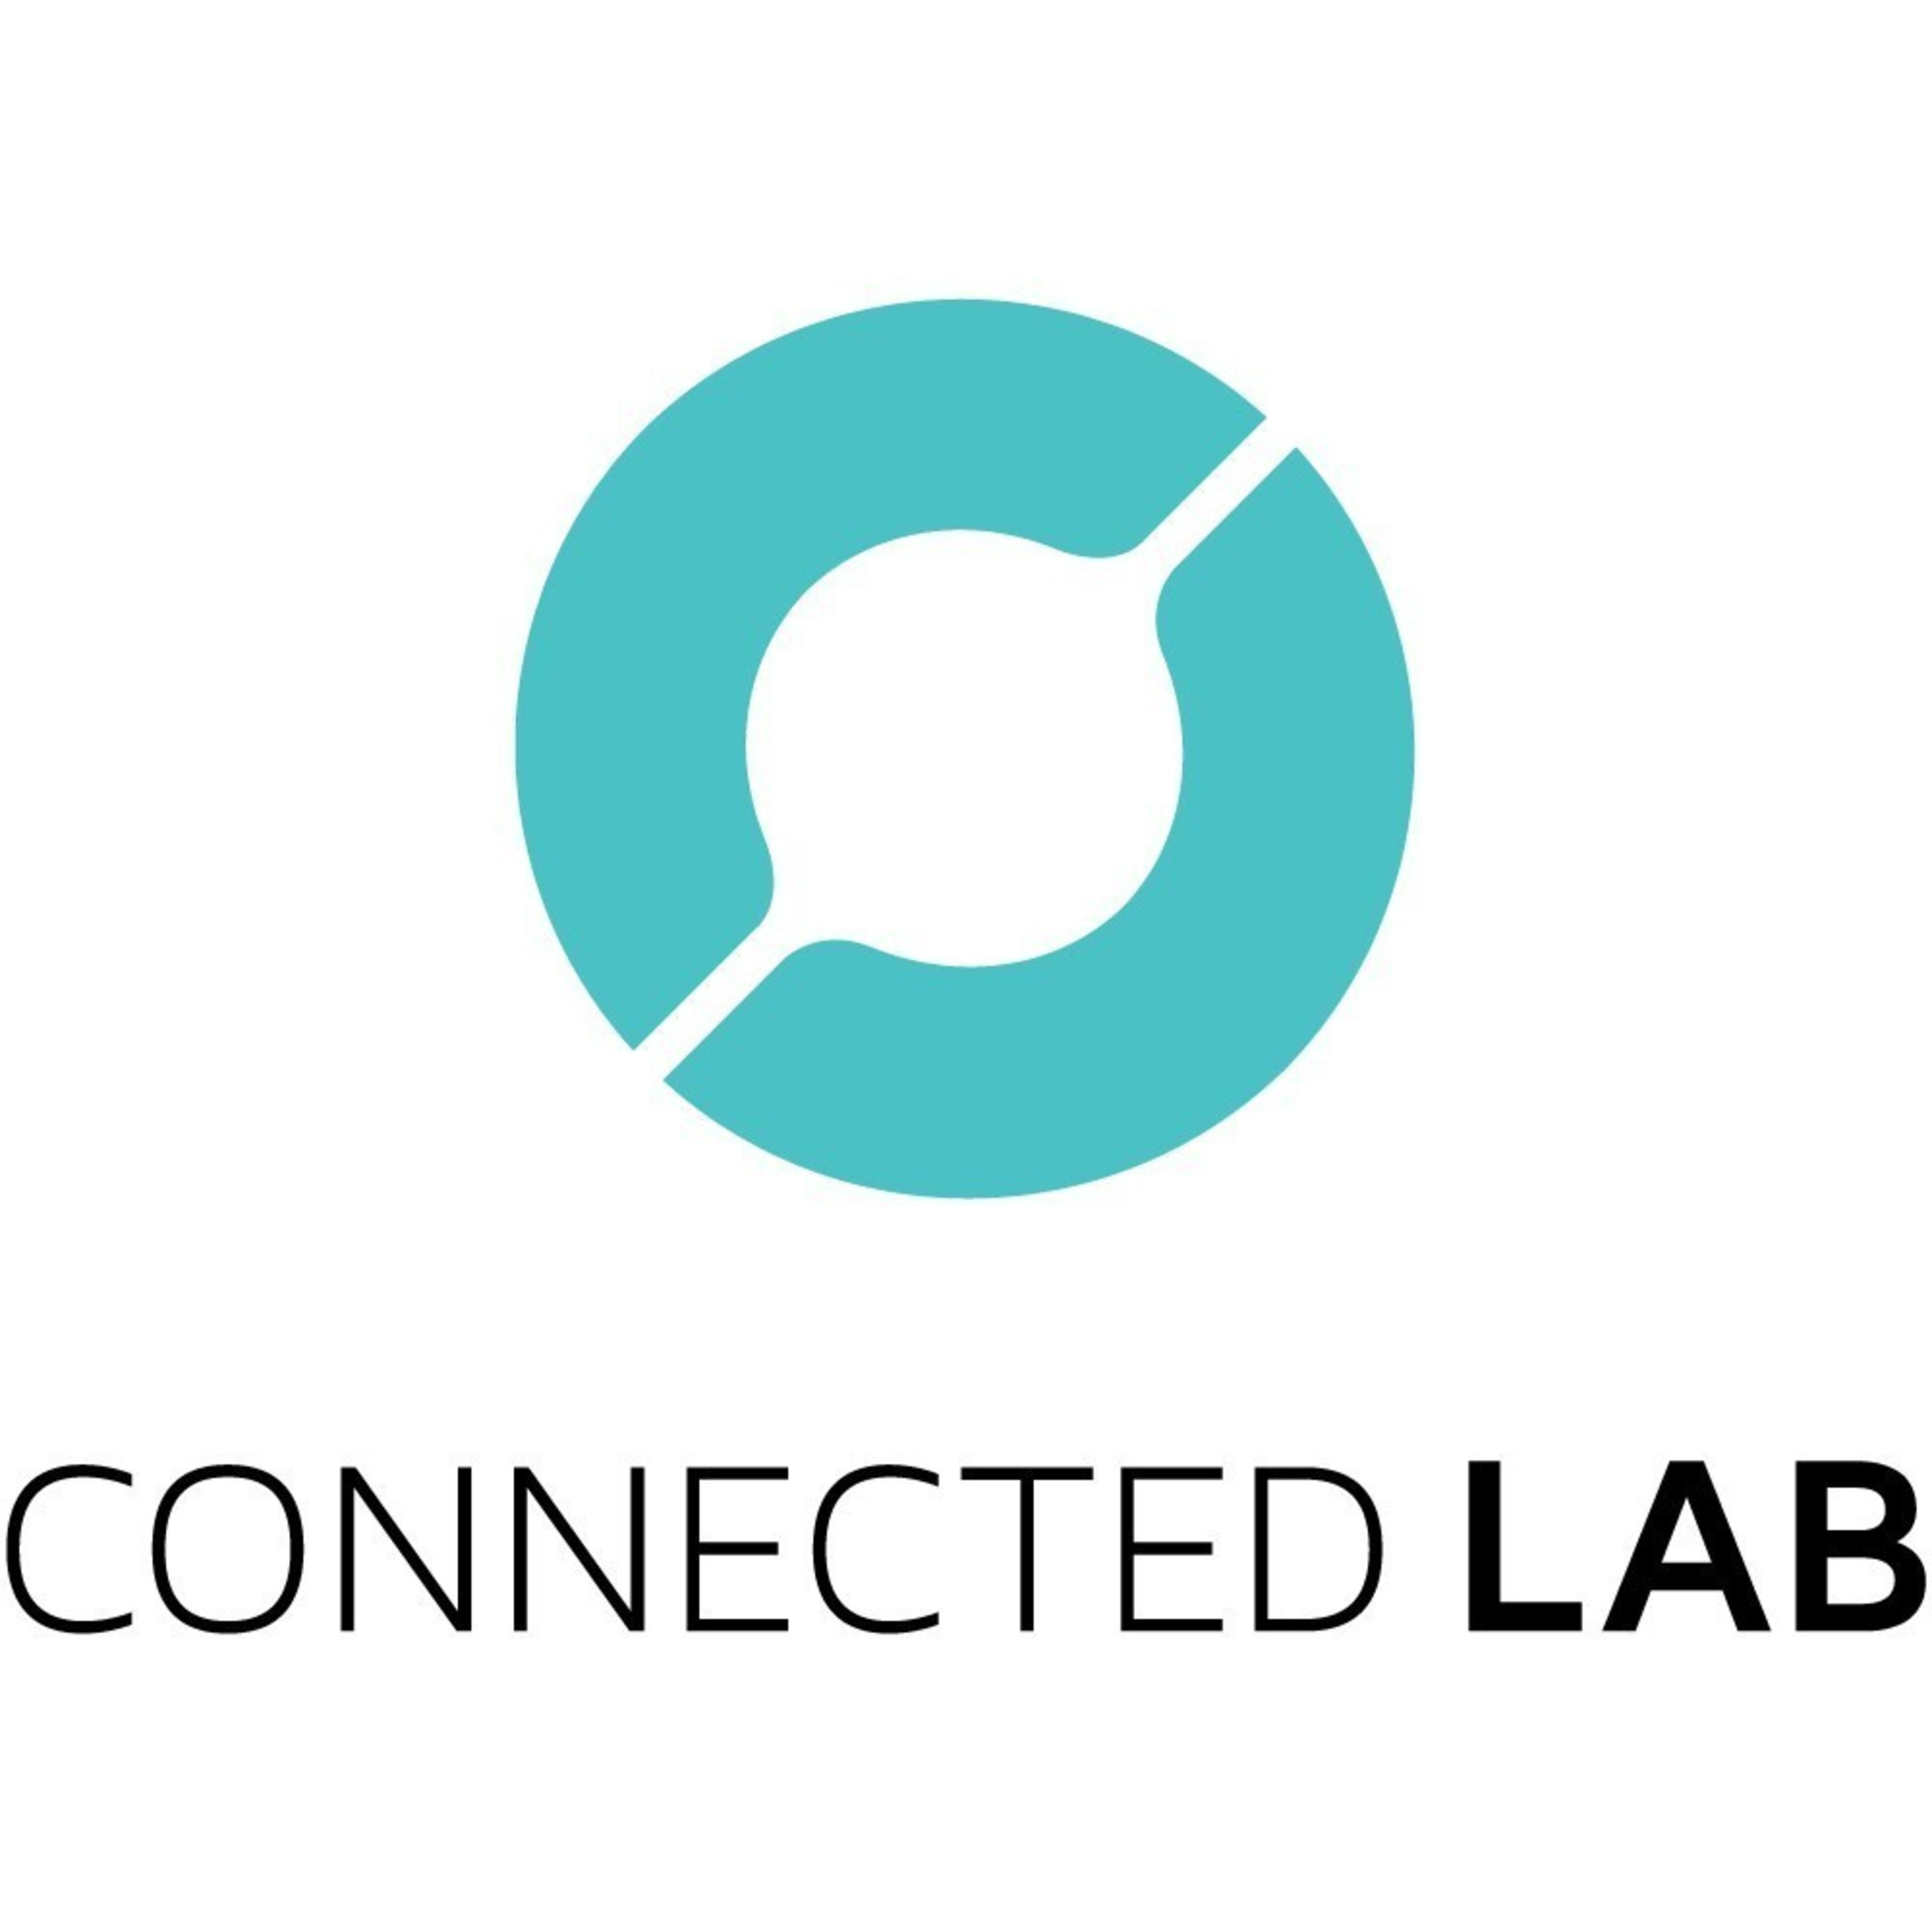 Connected Lab to host Amazon Echo's first ever hackathon in Canada